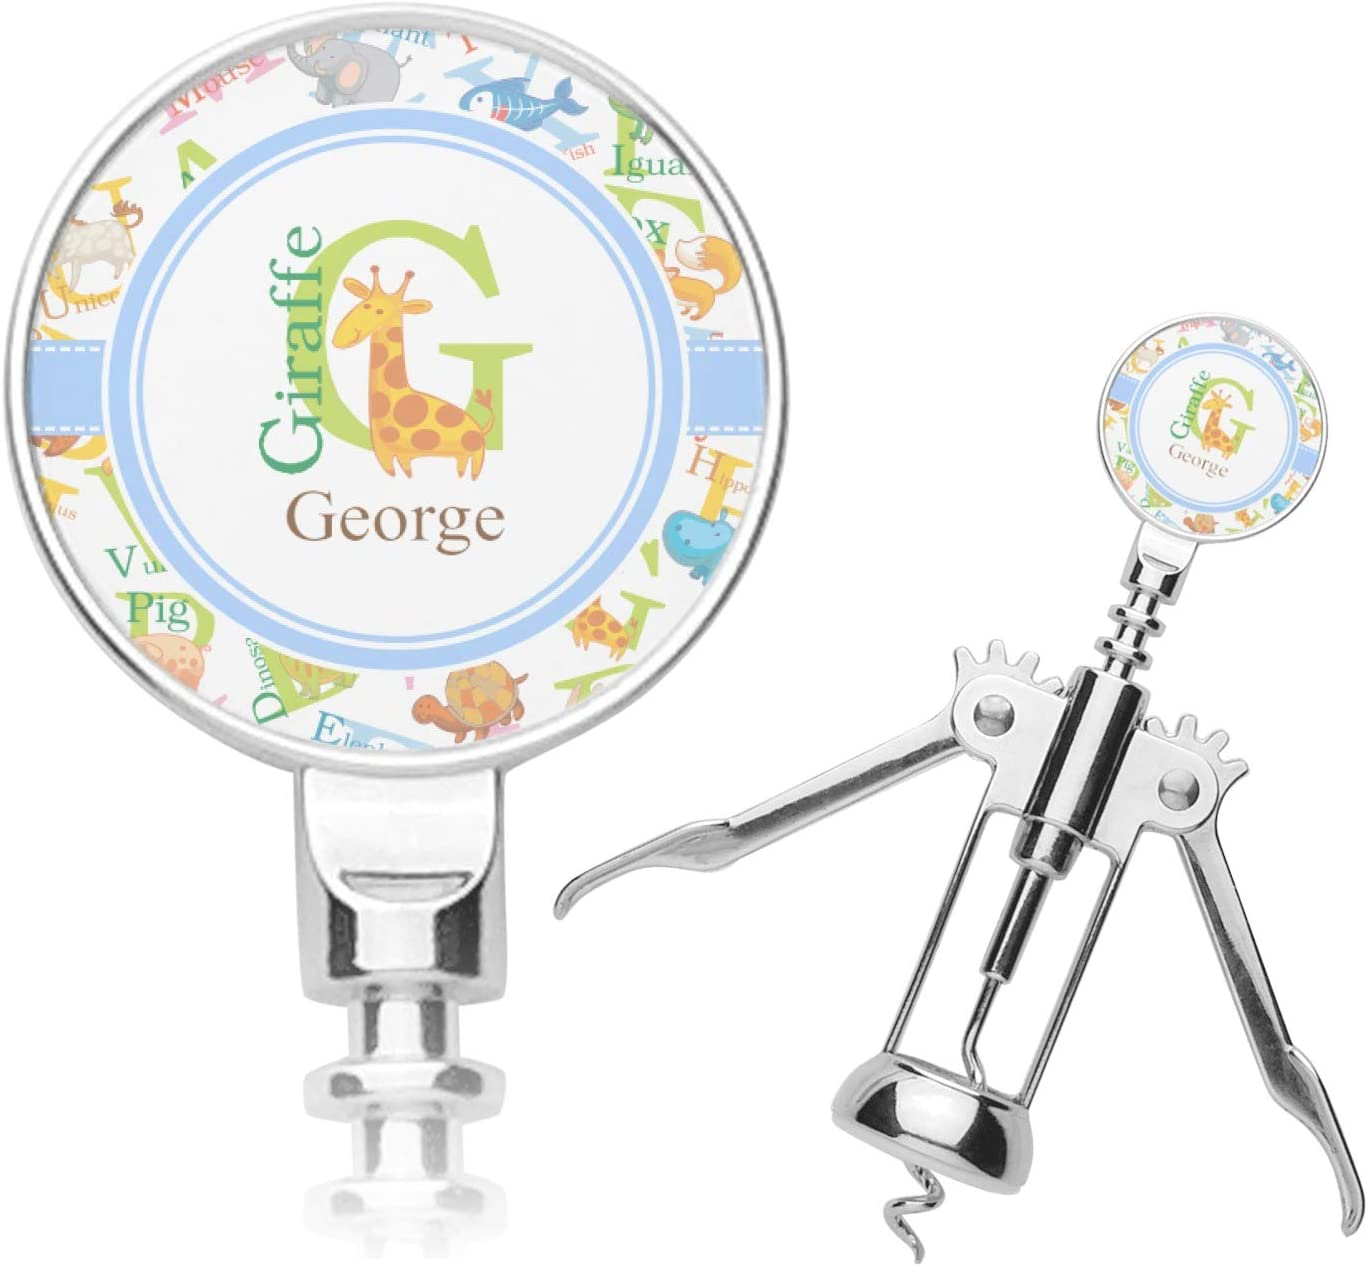 Daily bargain sale Animal Alphabet New Free Shipping Corkscrew Personalized